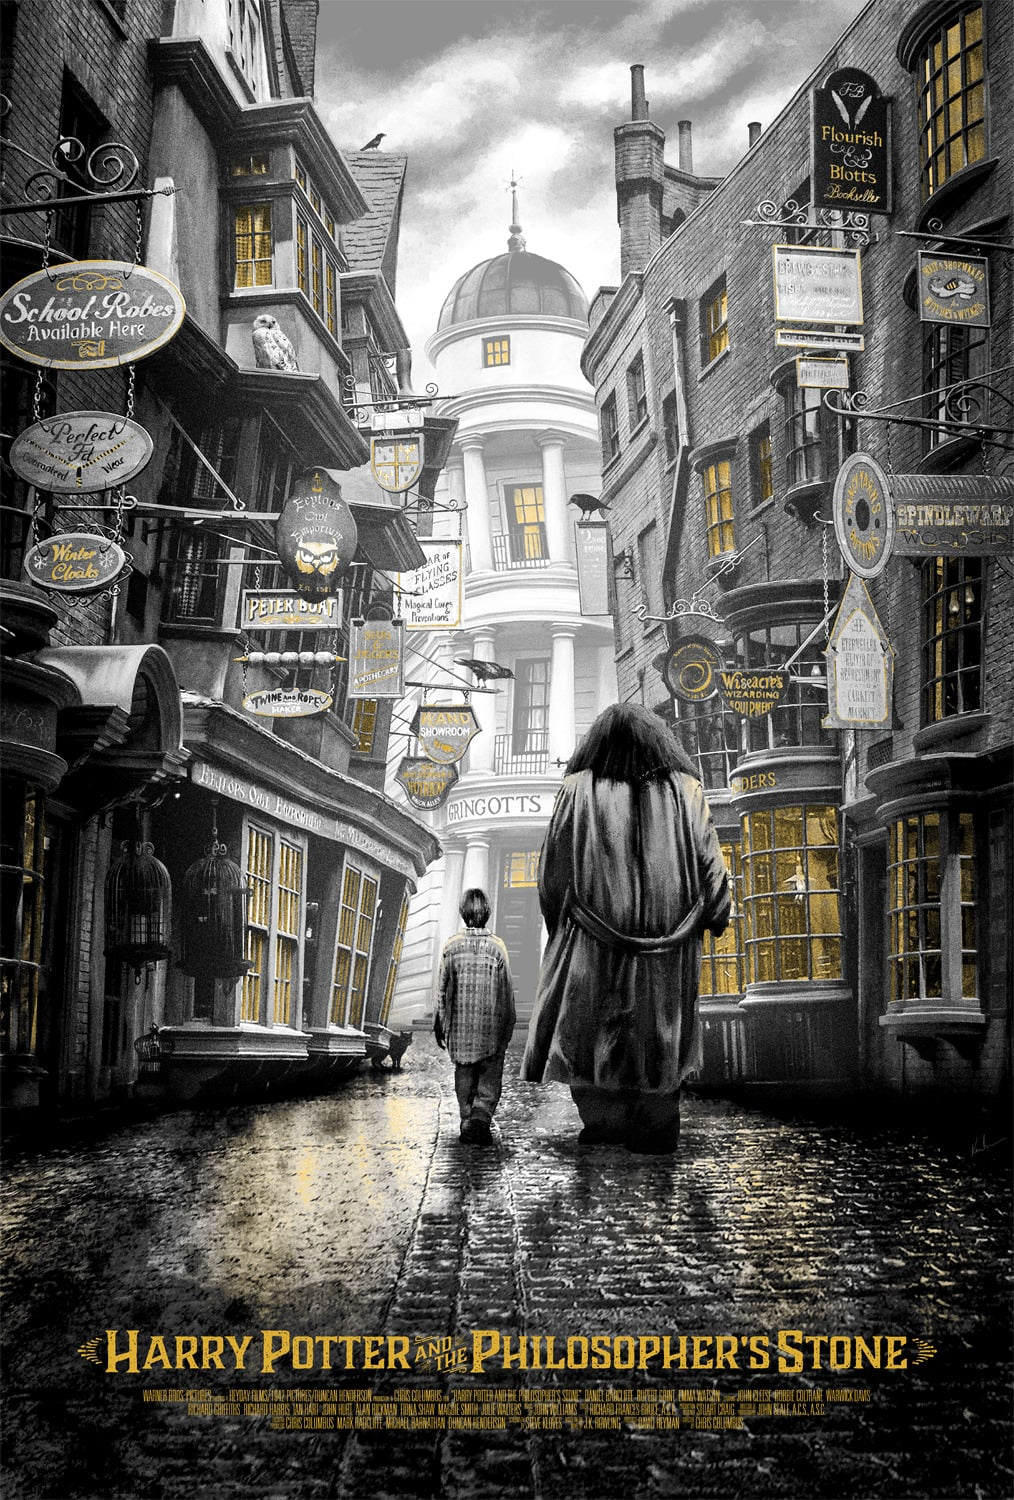 harry potter poster the philosophers stone high quality HD printable wallpapers art magical streets hegrid and harry